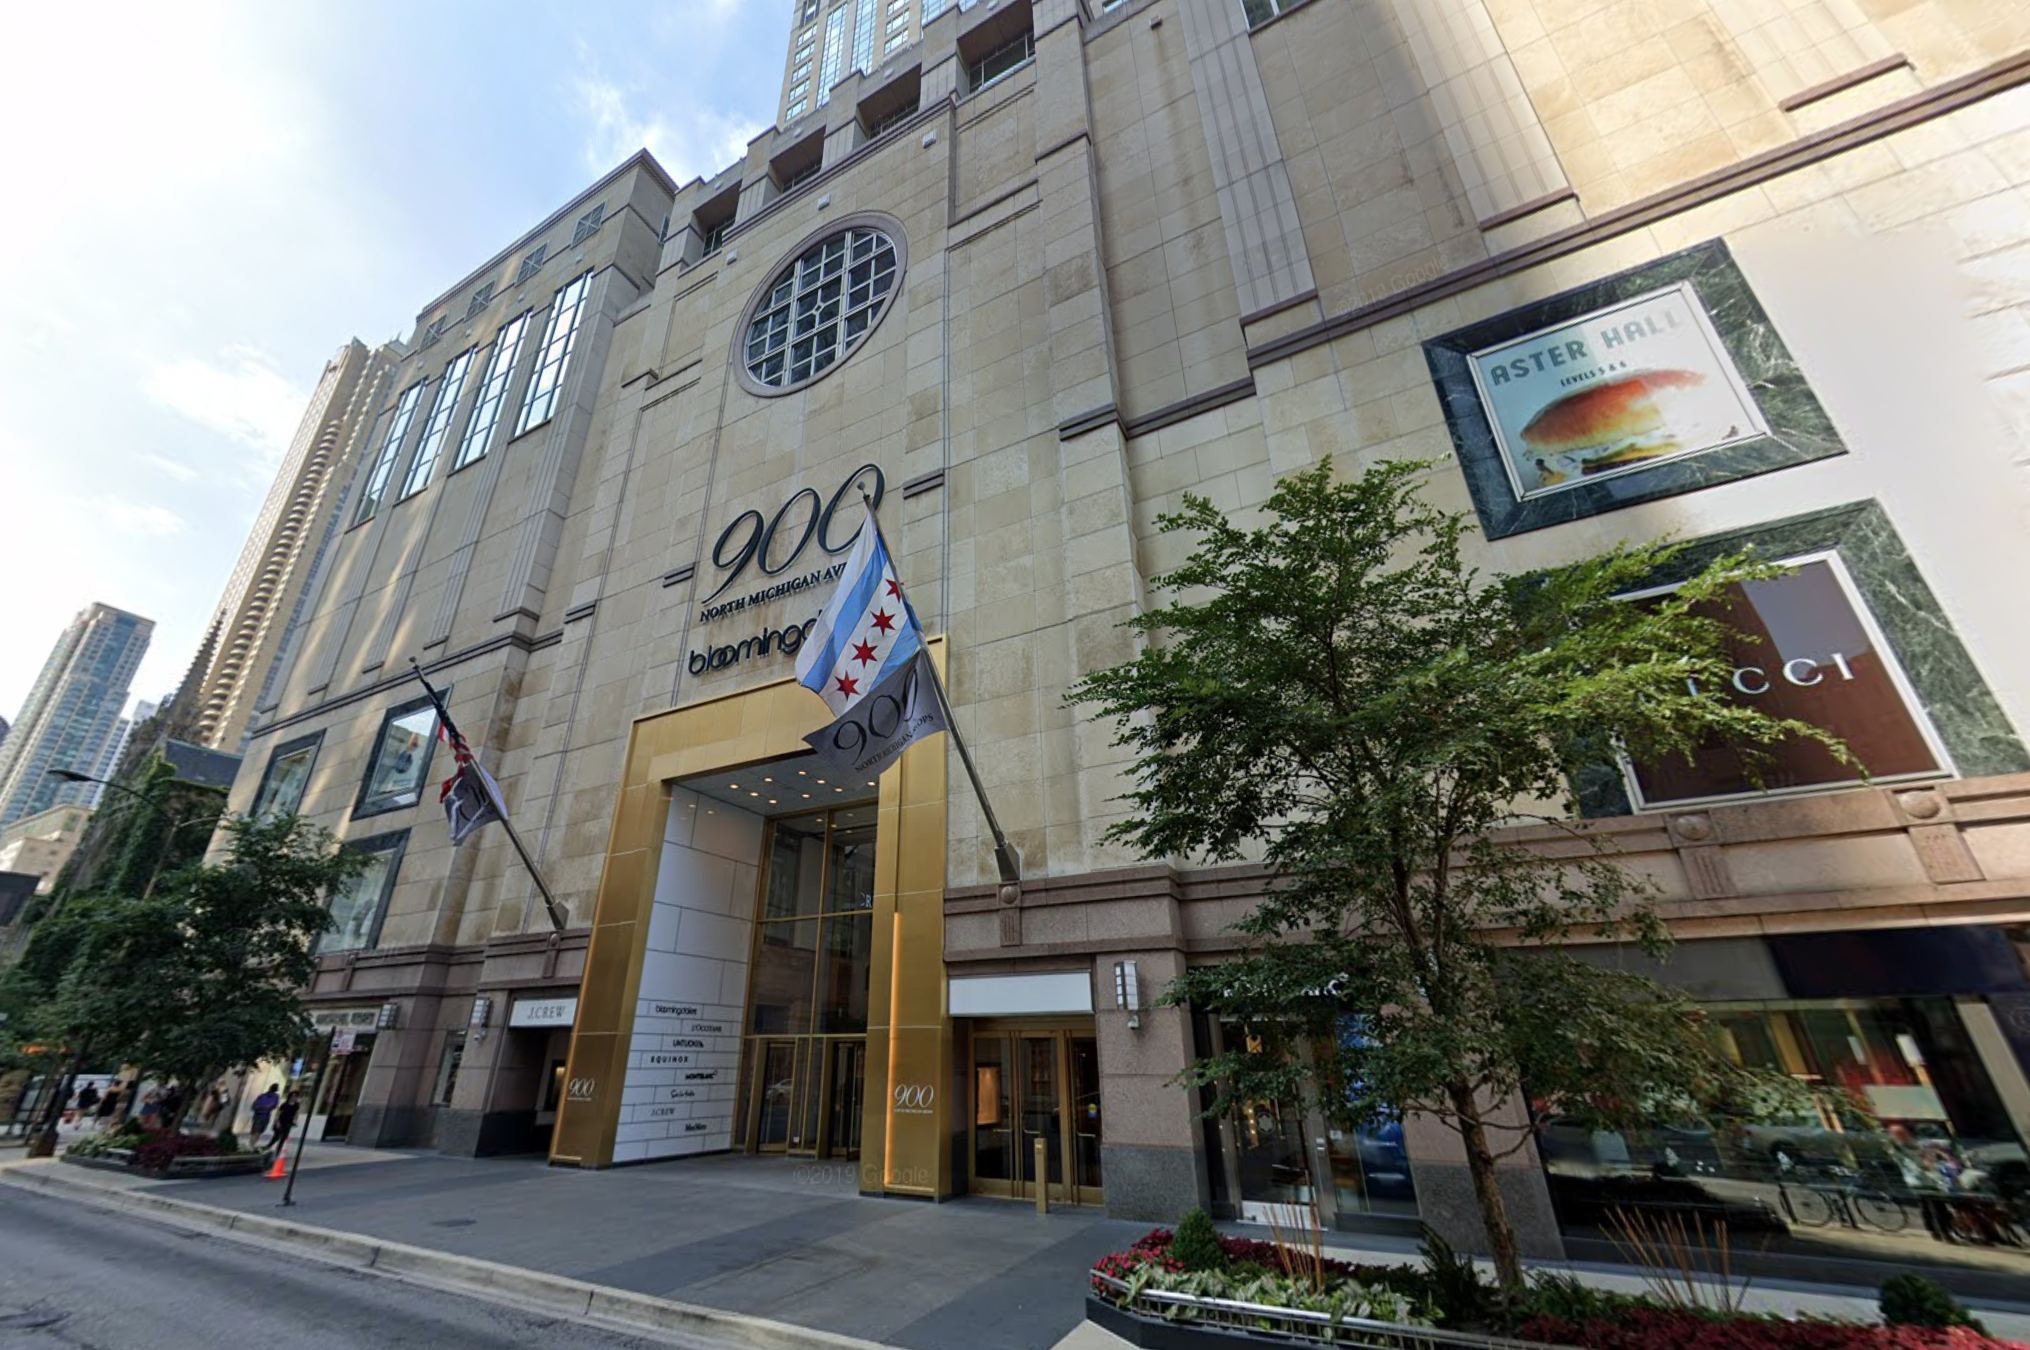 A large group broke the windows of a department store and stole merchandise July 17, 2020, in the 900 block of North Michigan Avenue.